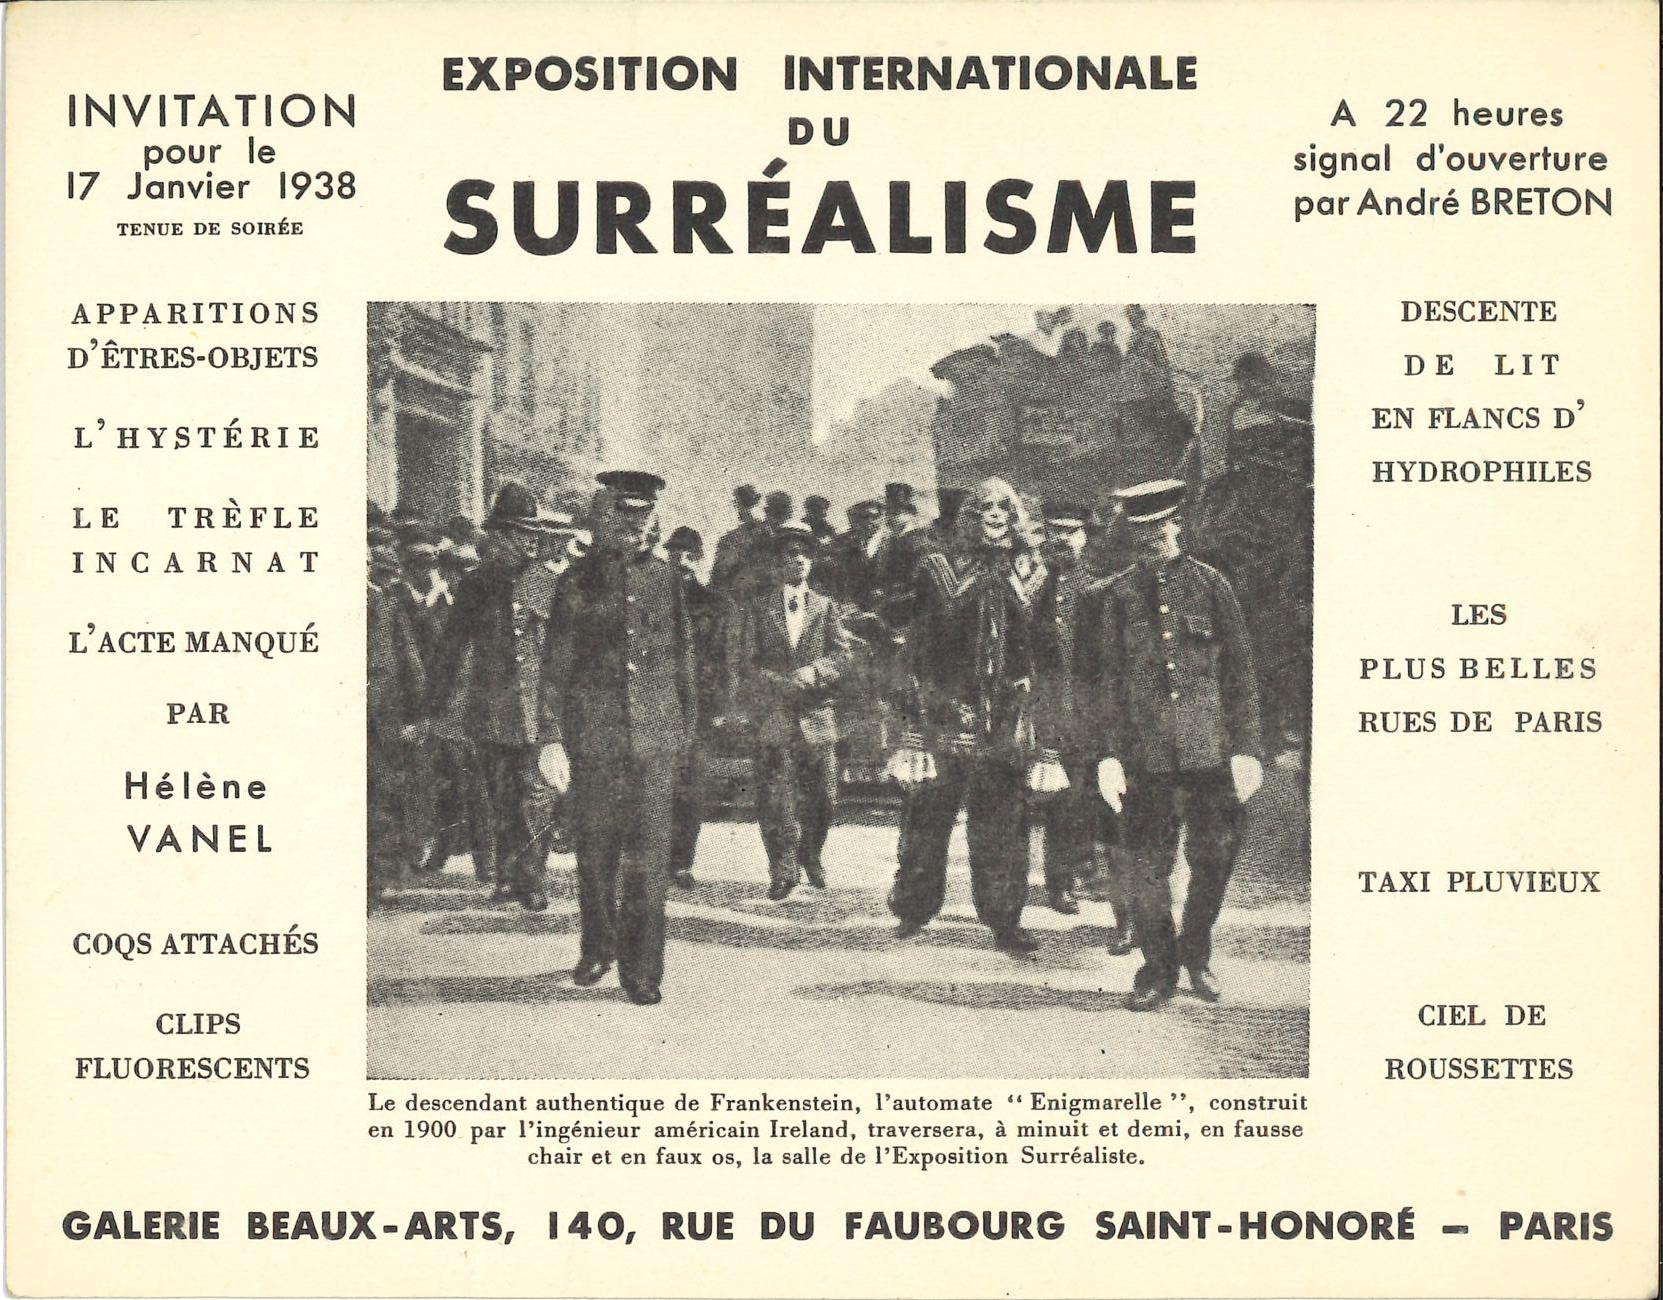 """Exposition Internationale du Surréalisme, Galerie Beaux Arts, Paris, 1938, (Invitation)  Archiv der Avantgarden, Staatliche Kunstsammlungen Dresden"